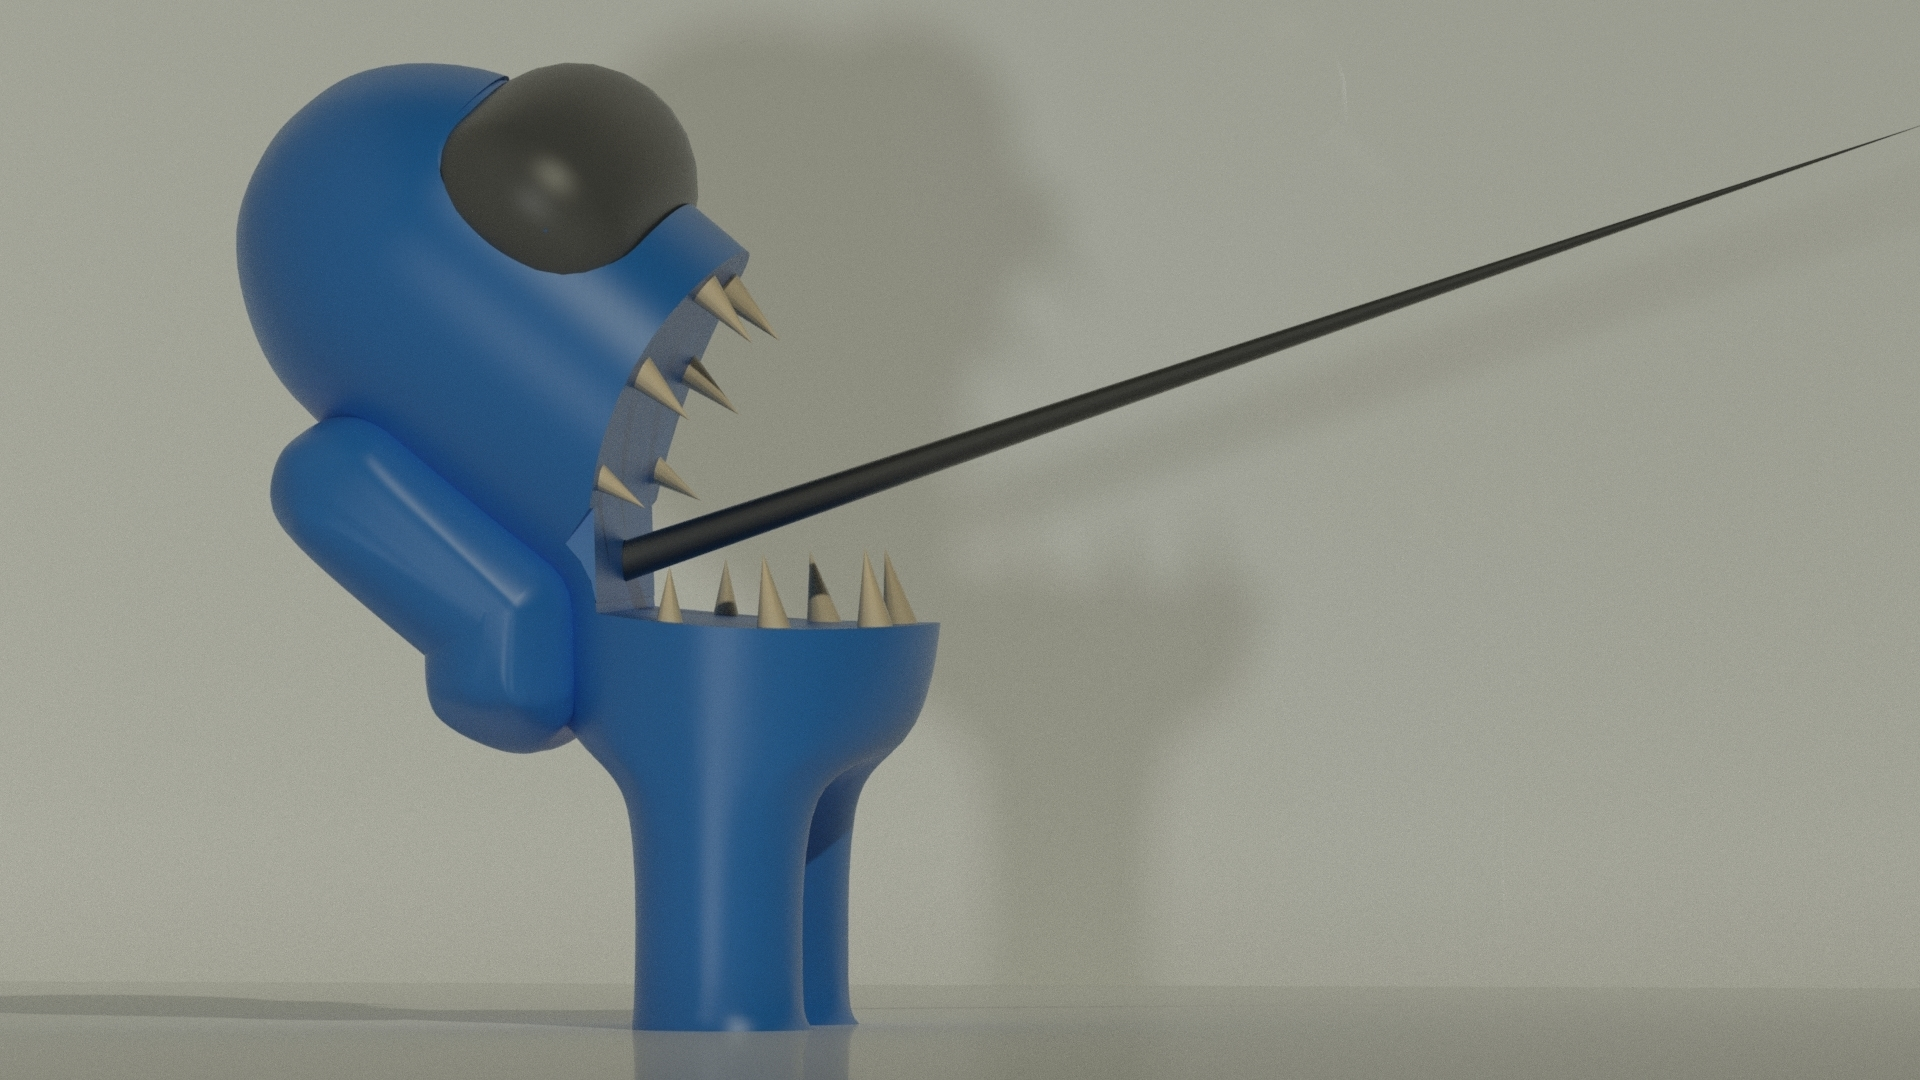 Download Stl File Among Us Imposter 3d Printing Model Cults